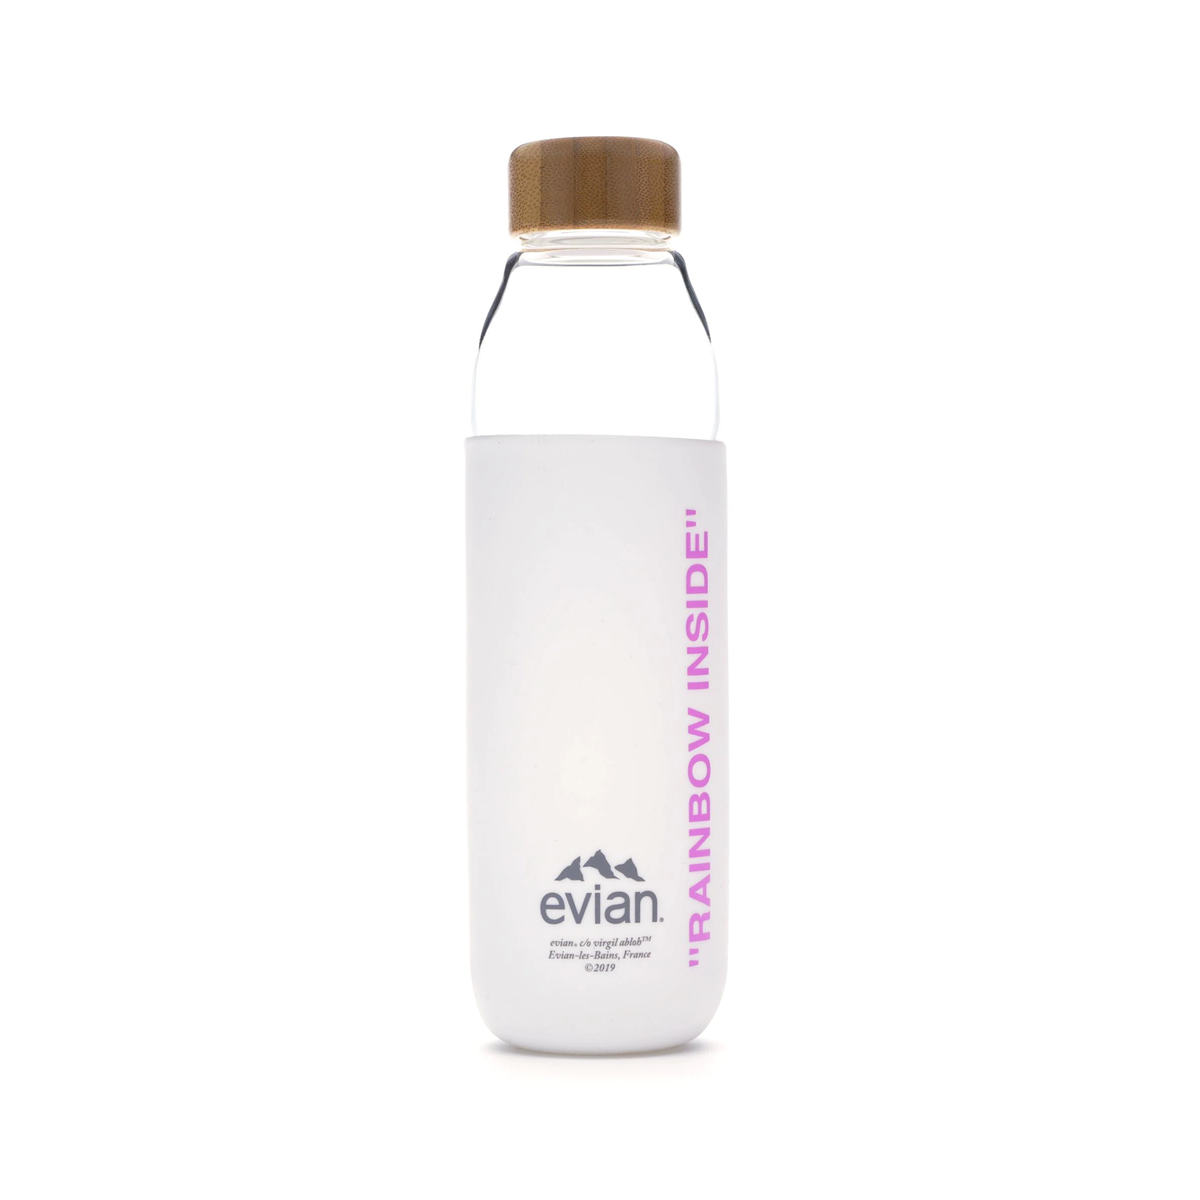 3dd07d676b EVIAN BY VIRGIL ABLOH x SOMA Refillable Glass Water Bottle White/Pink –  afterdrop